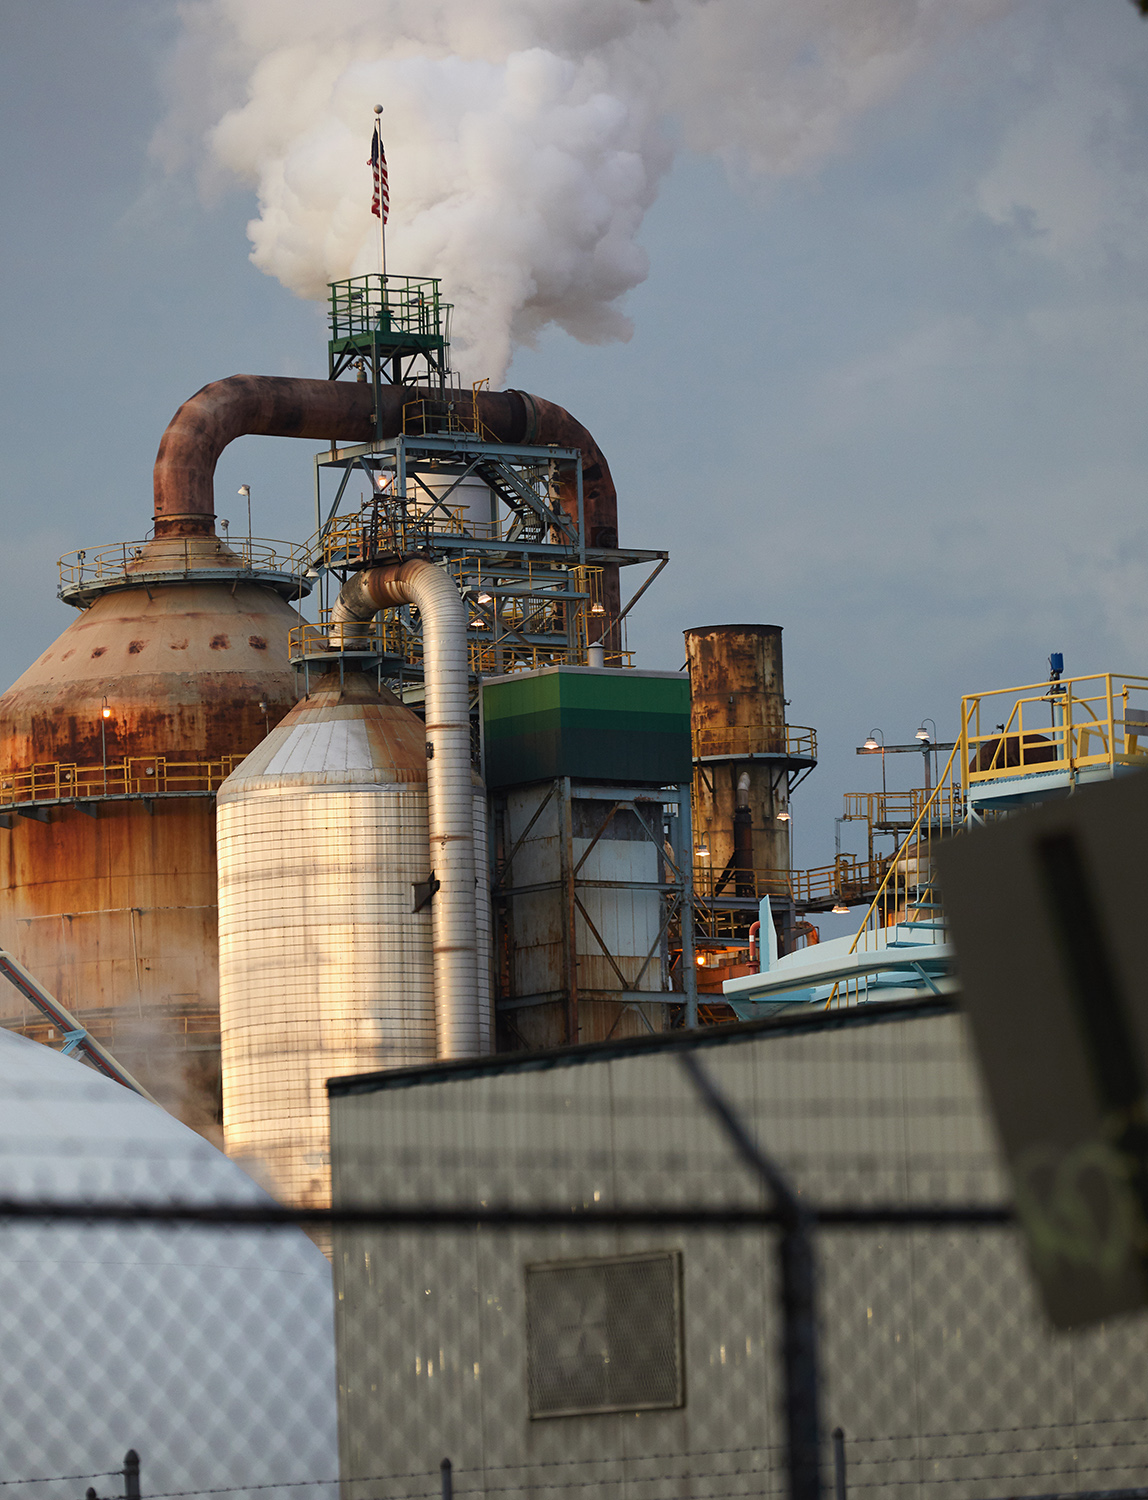 08062020_NYT_MONROE_REFINERY_TRAINER_PA_043